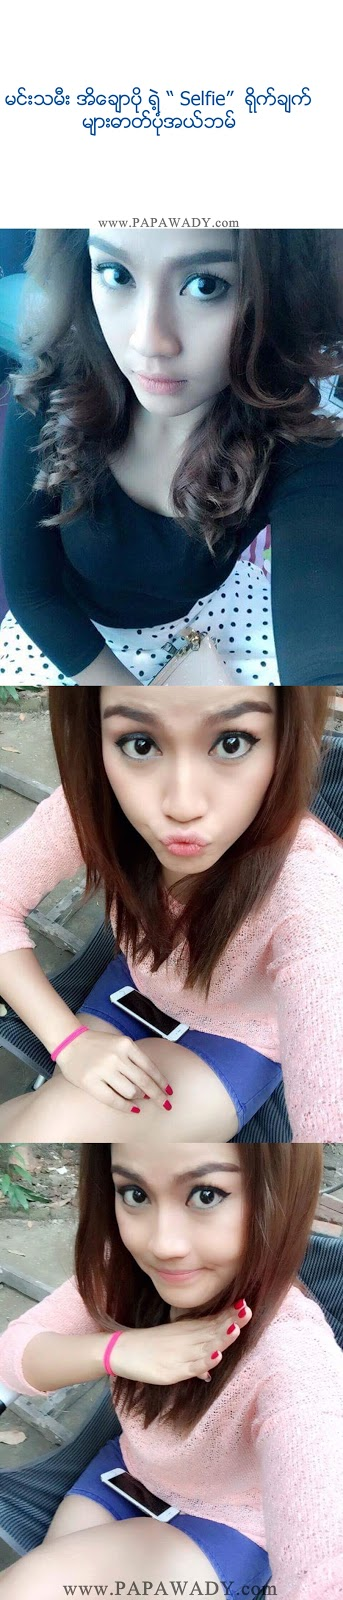 Ei Chaw Po Selfies Shot Collection Photos Album (1)